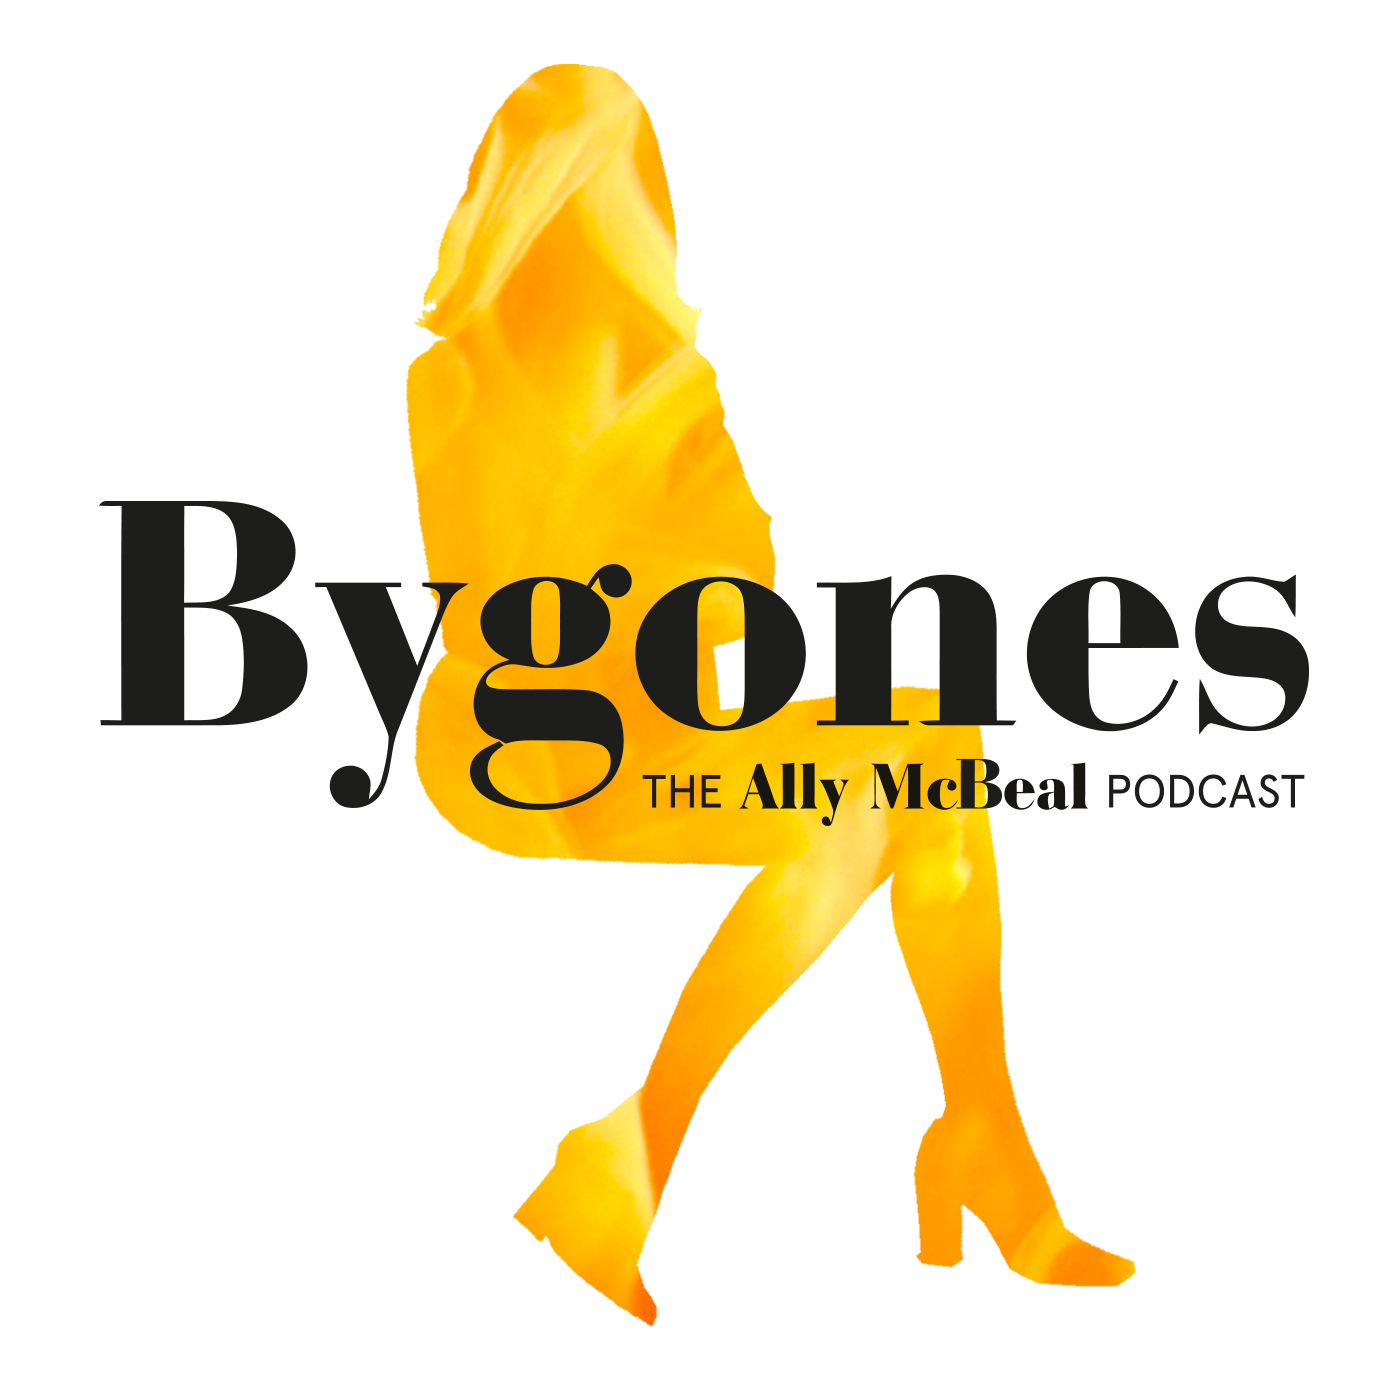 Bygones: The Ally McBeal Podcast